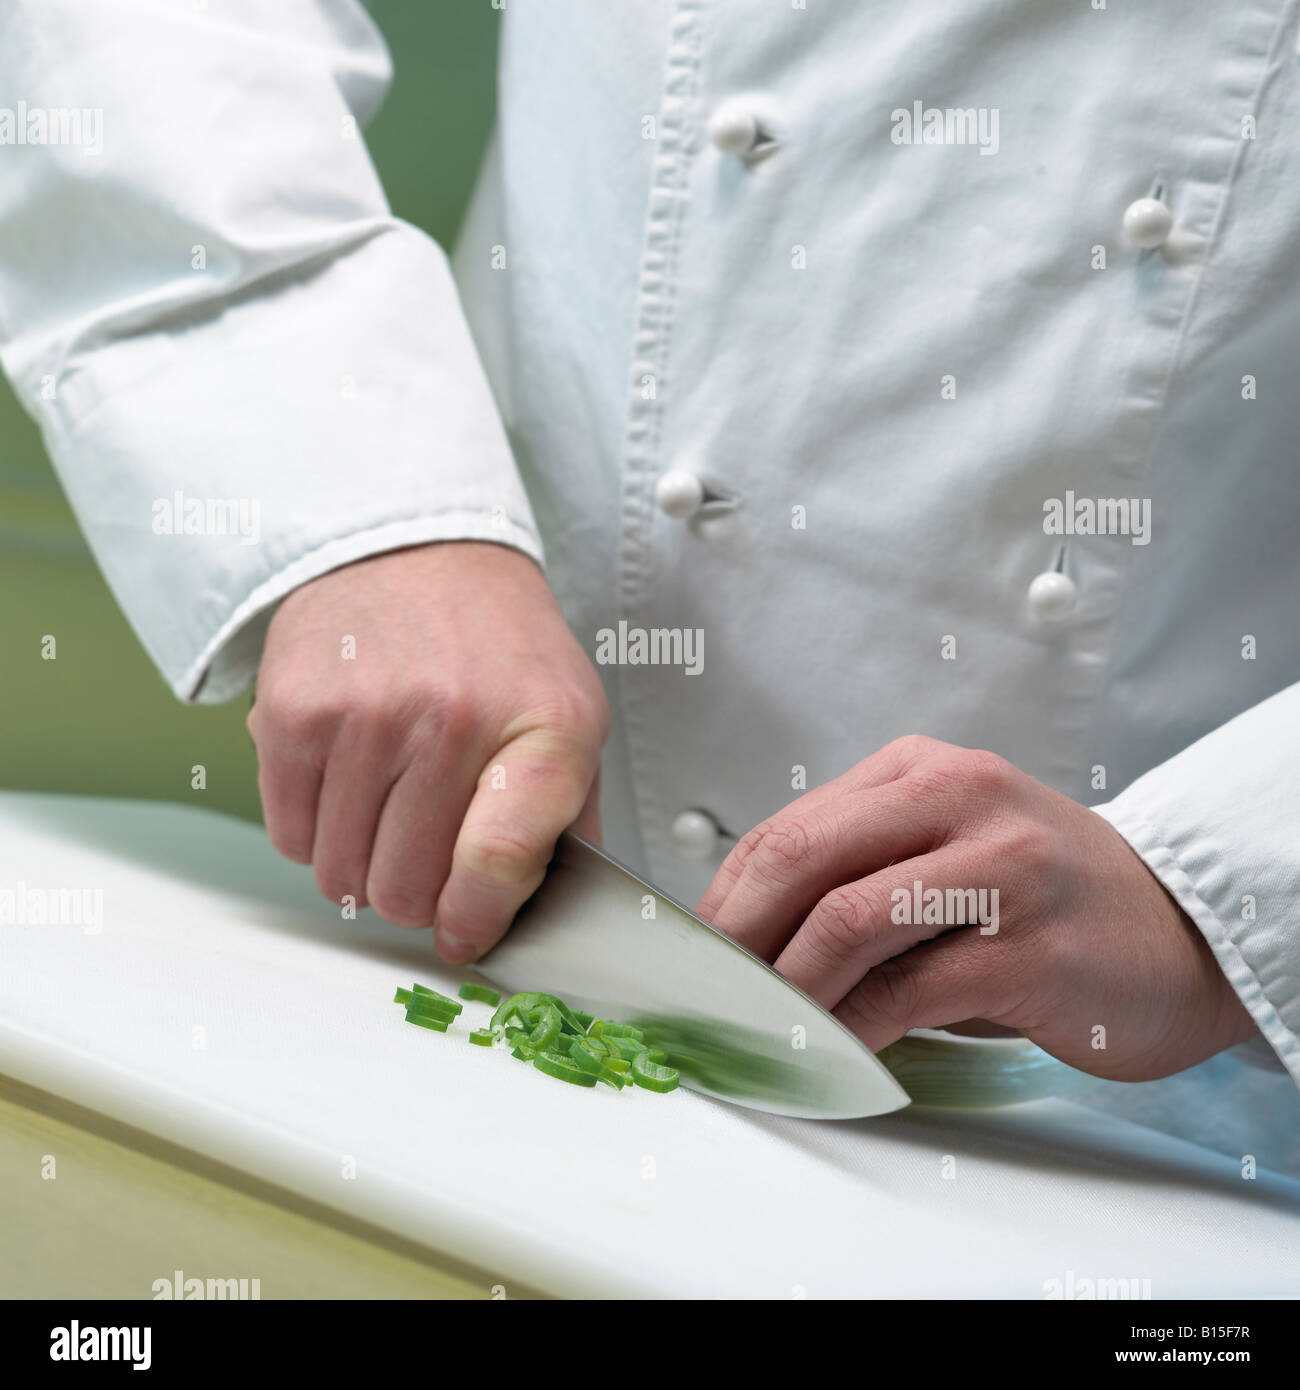 cook is cutting leek close up hands and knife Stock Photo